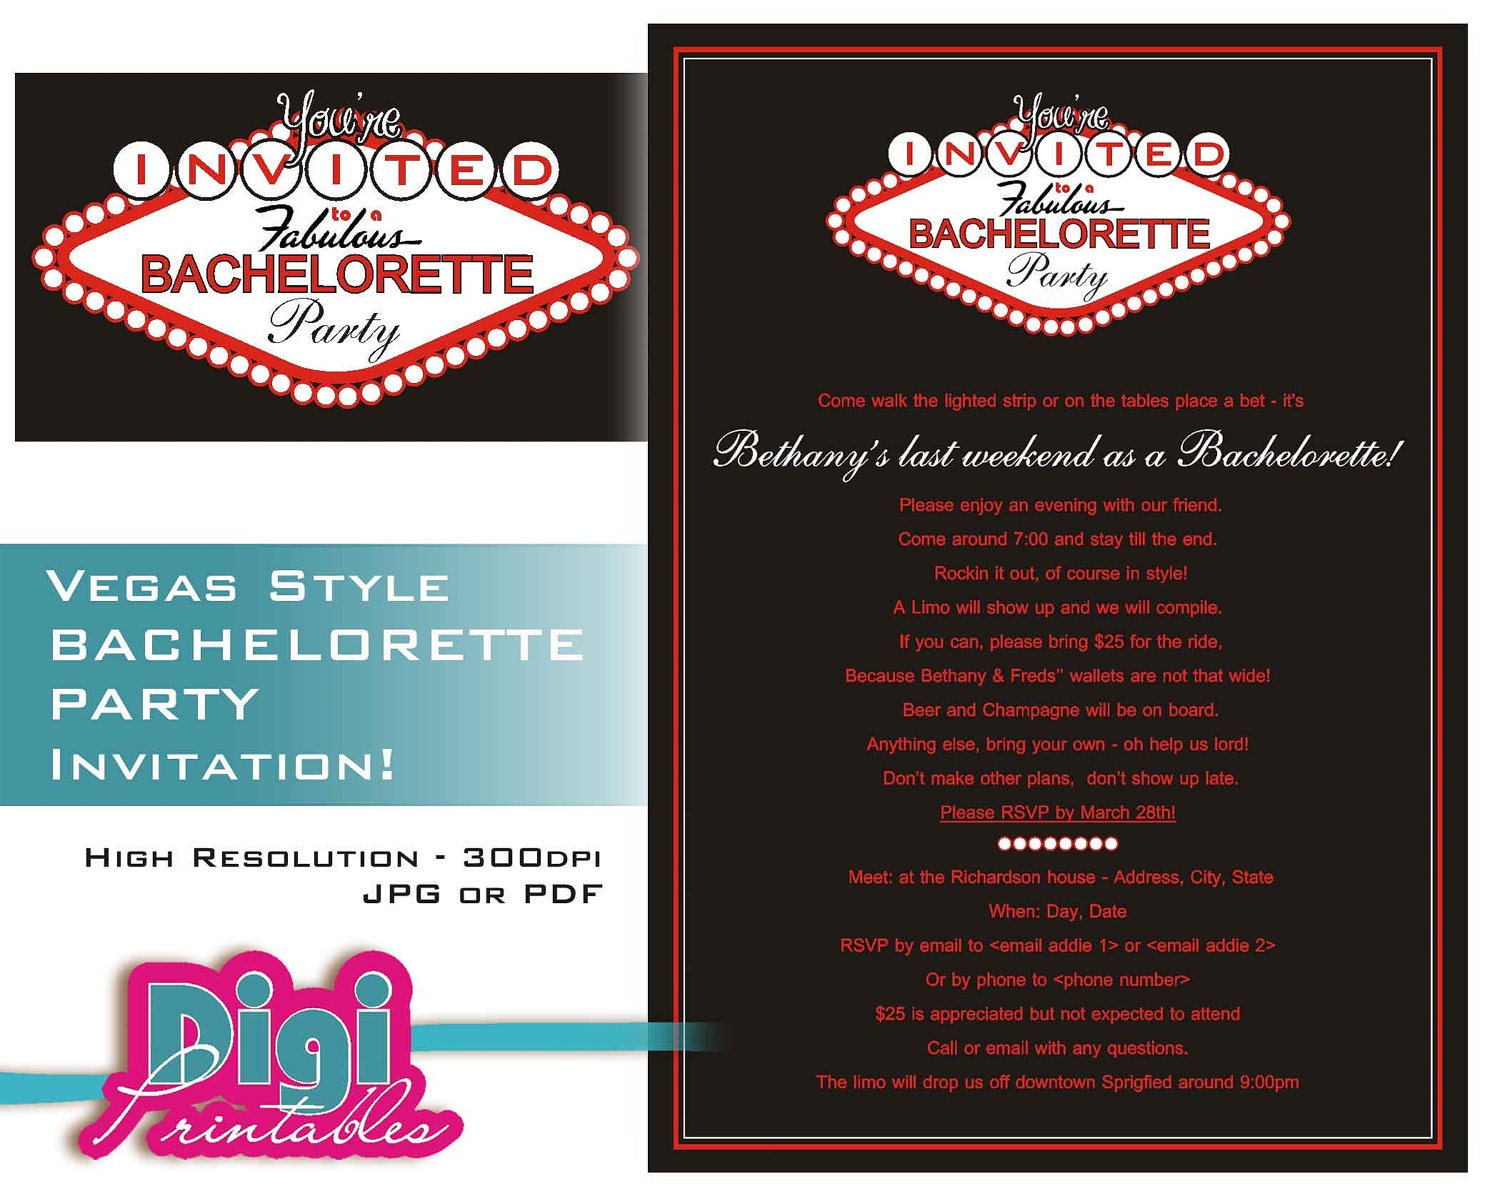 Bachelorette Party Invitation Las Vegas Digital Download